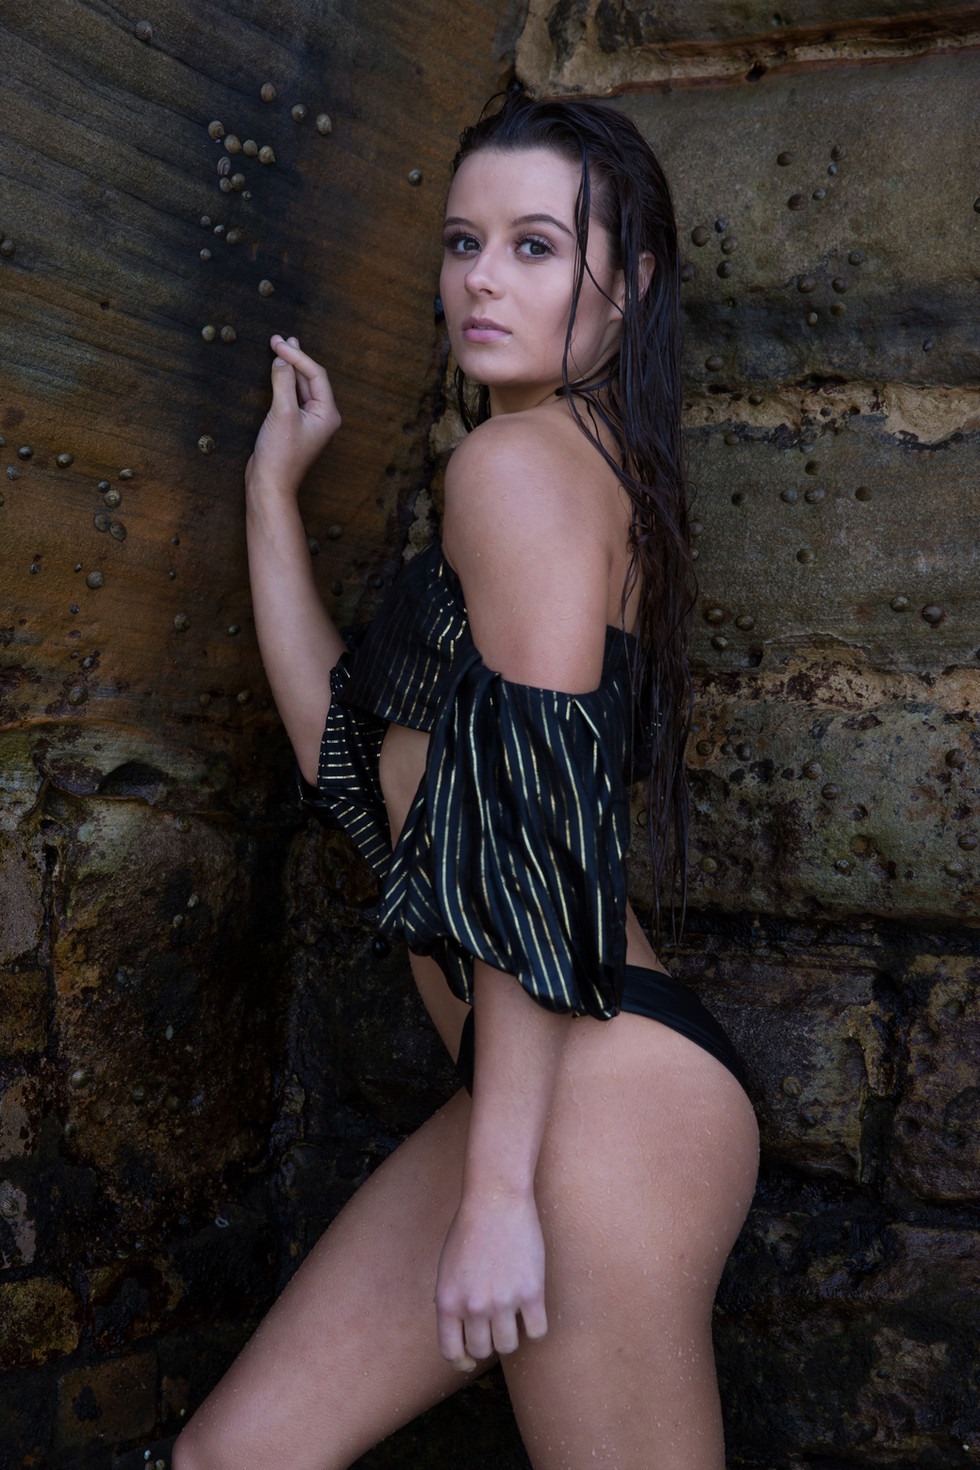 Alecia__by_CoogeePhotography-0095144.jpg